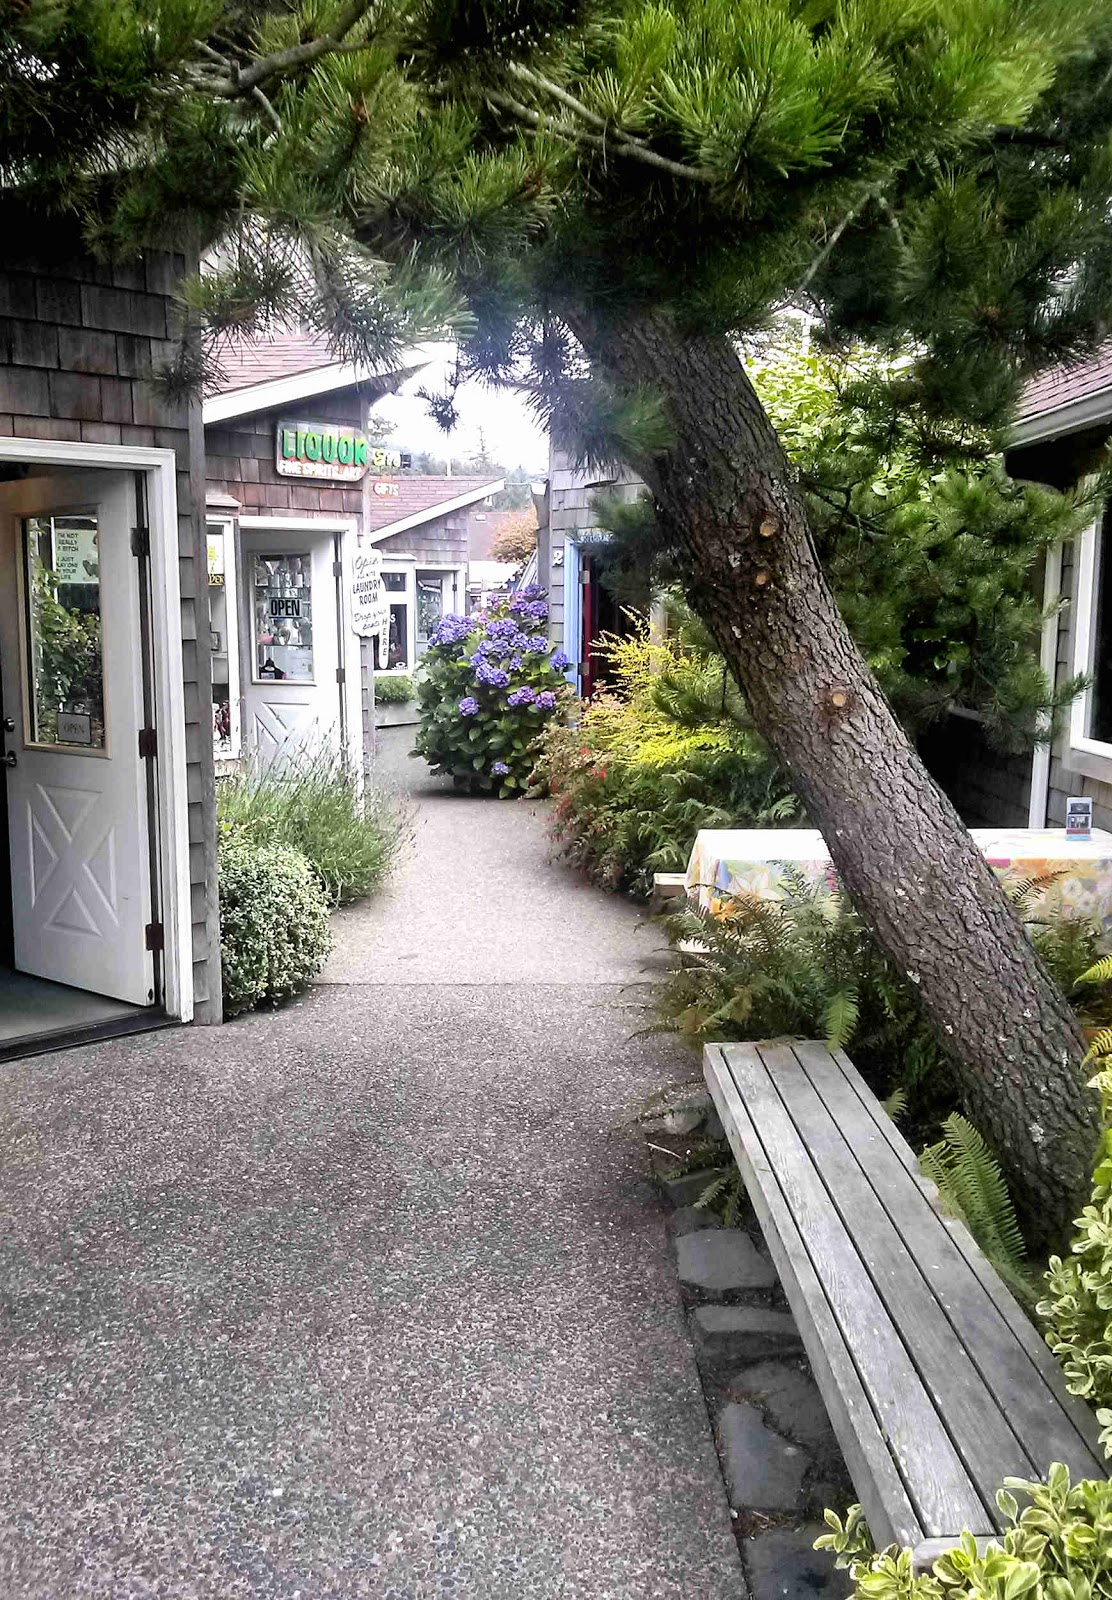 cannon beach singles Get details of 1688 hemlock st your dream home in cannon beach, 97110 and view its photos, videos, amenities and local information.